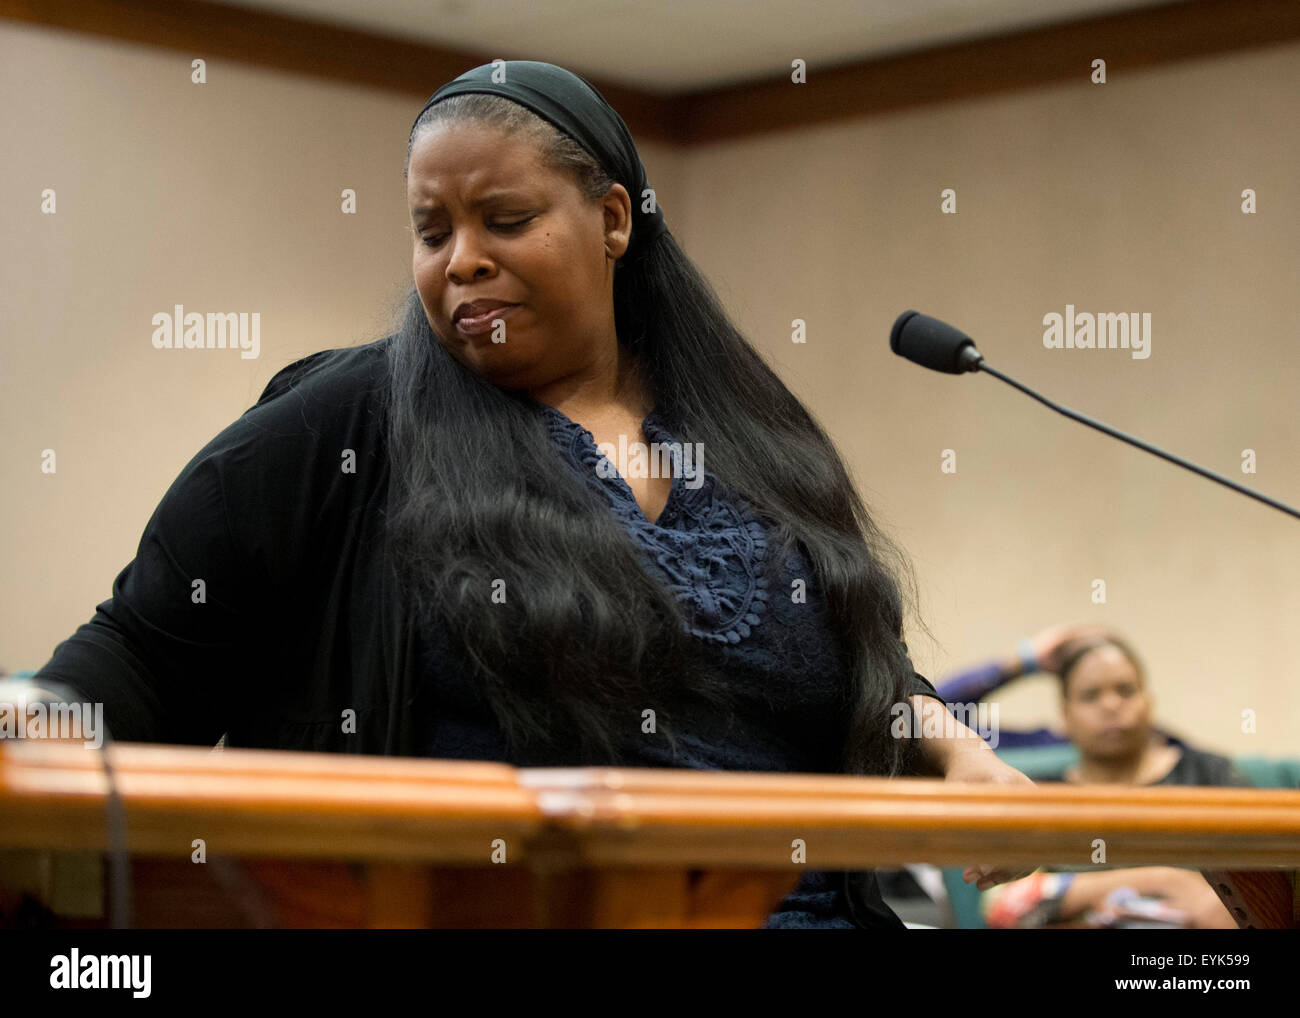 Austin, Texas USA July 30, 2015: Janet Baker, who lost a son in a Texas police shooting in Houston, speaks as Texas - Stock Image